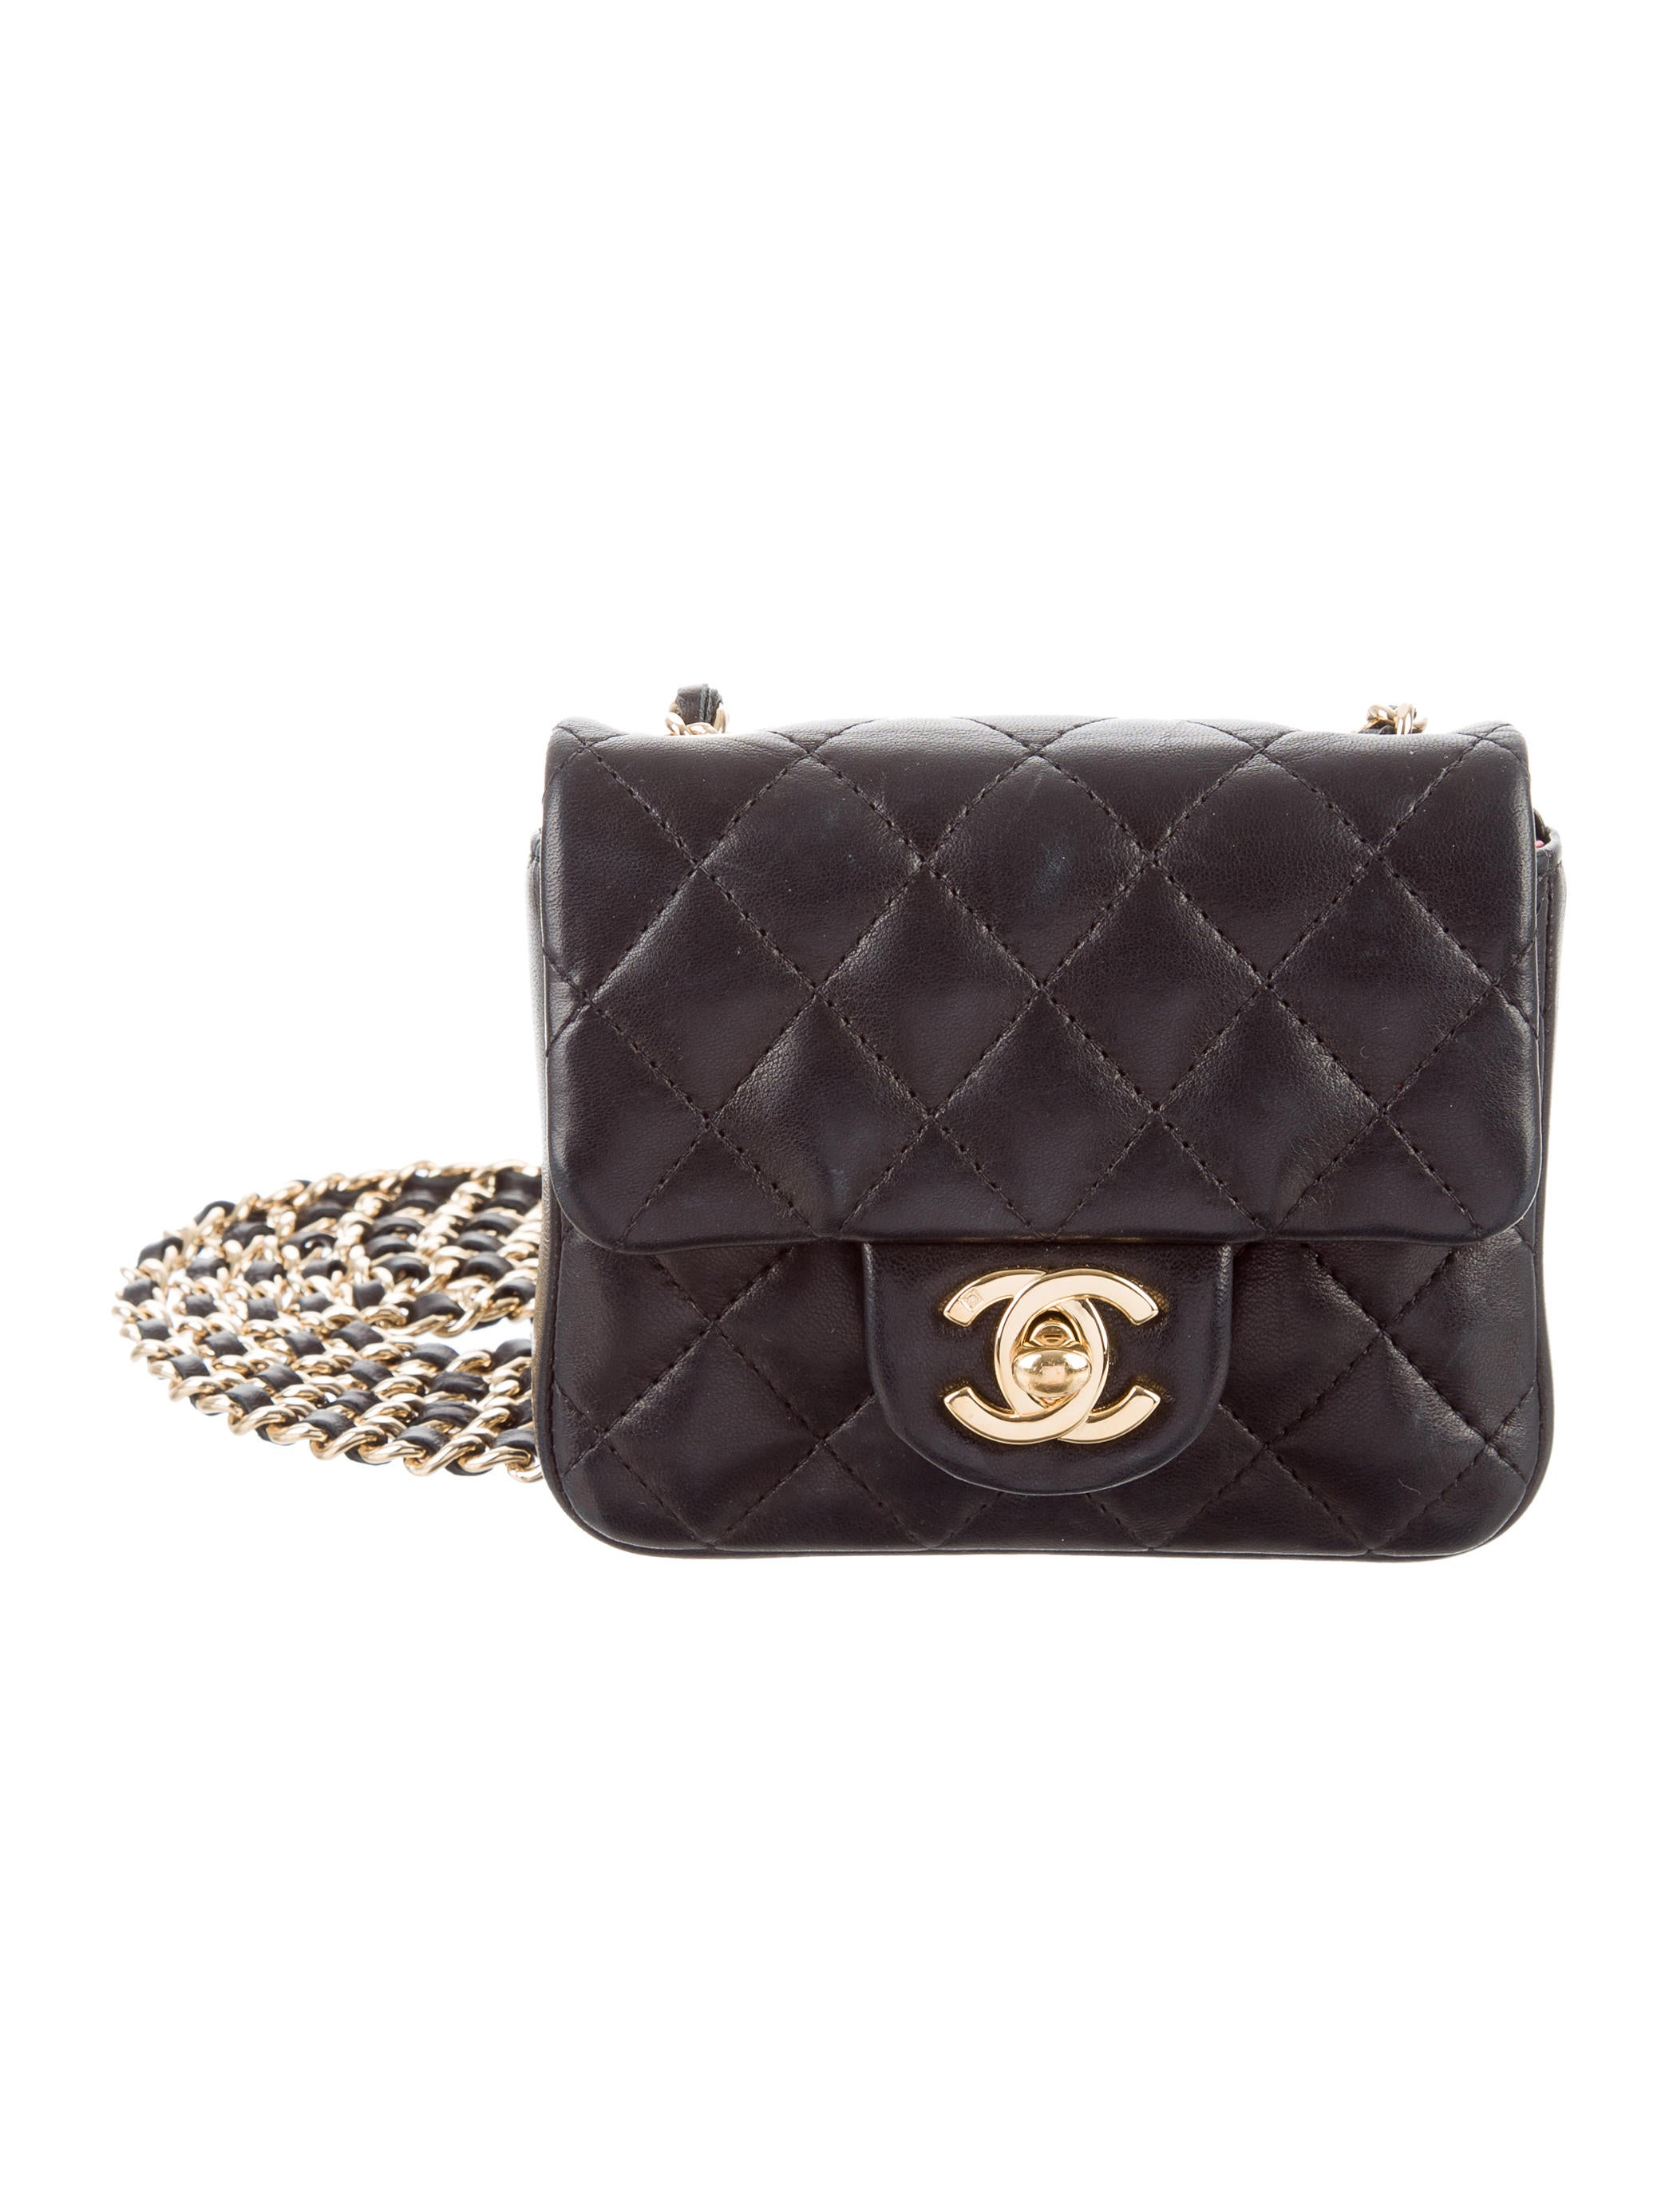 e74a7c30d7e40f Chanel Micro Quilted Flap Bag - Handbags - CHA173707 | The RealReal